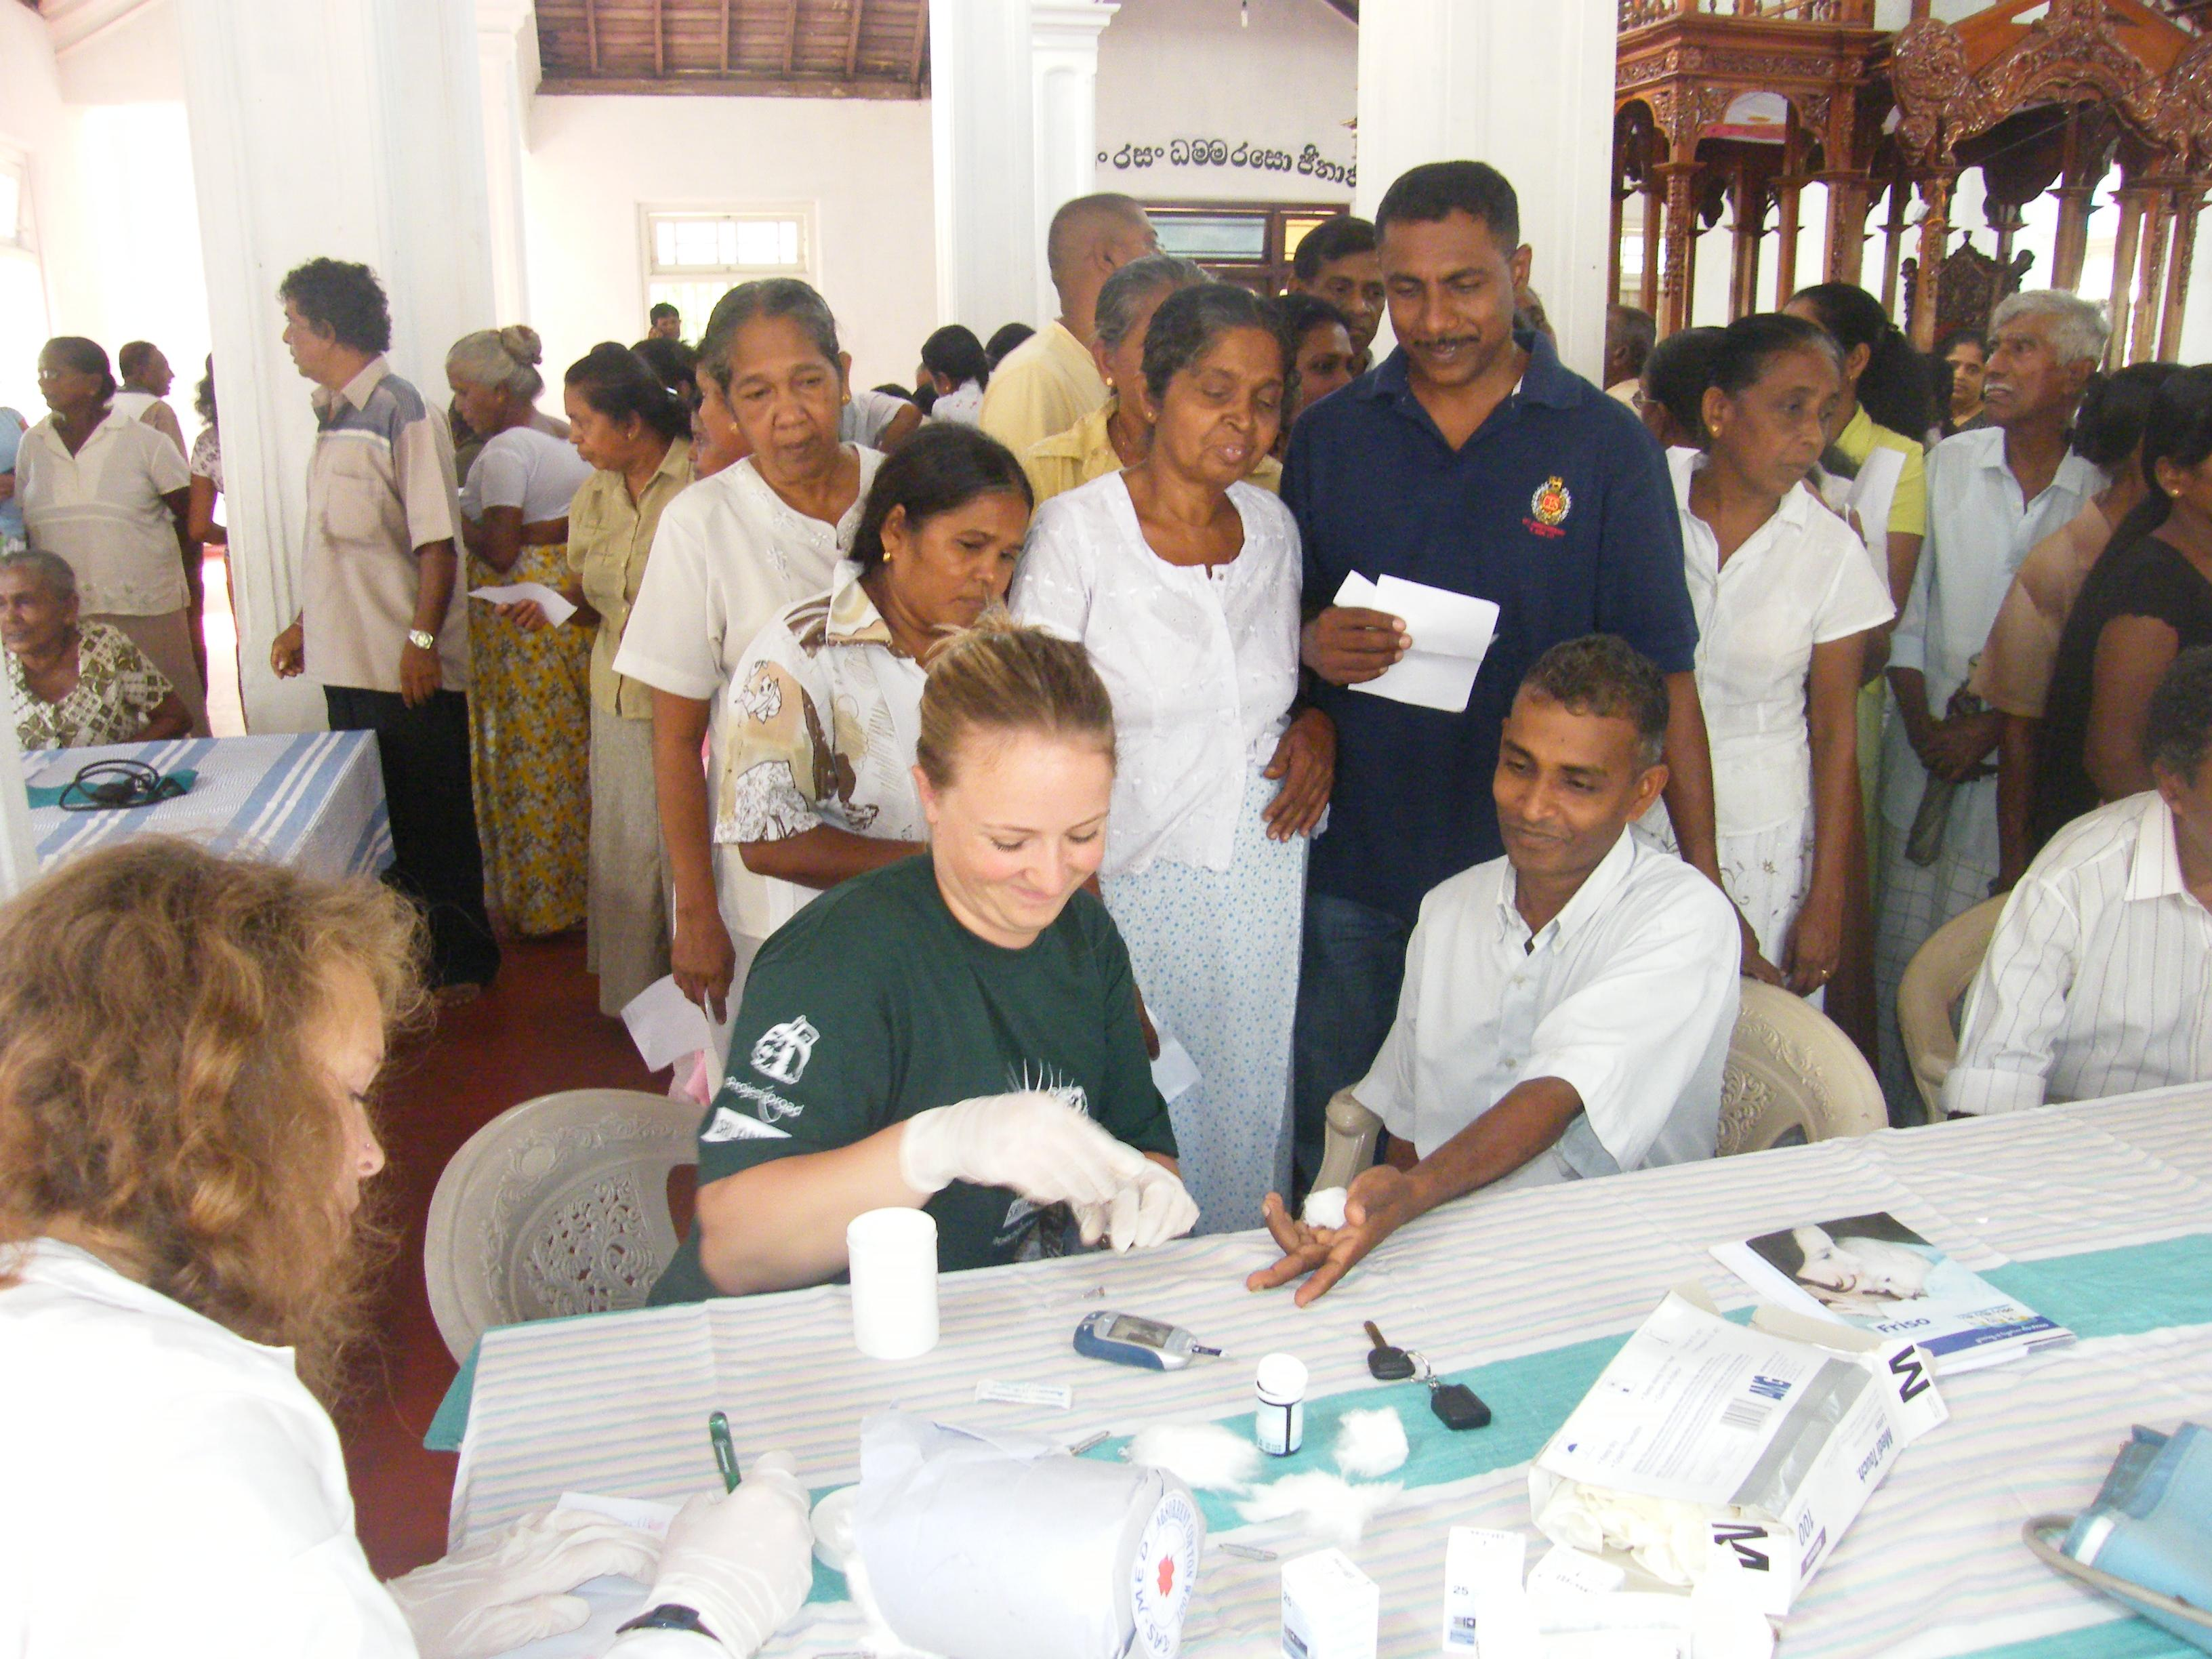 Two female interns on a nursing internship in Sri Lanka are seen helping at a medical camp assisting patients.